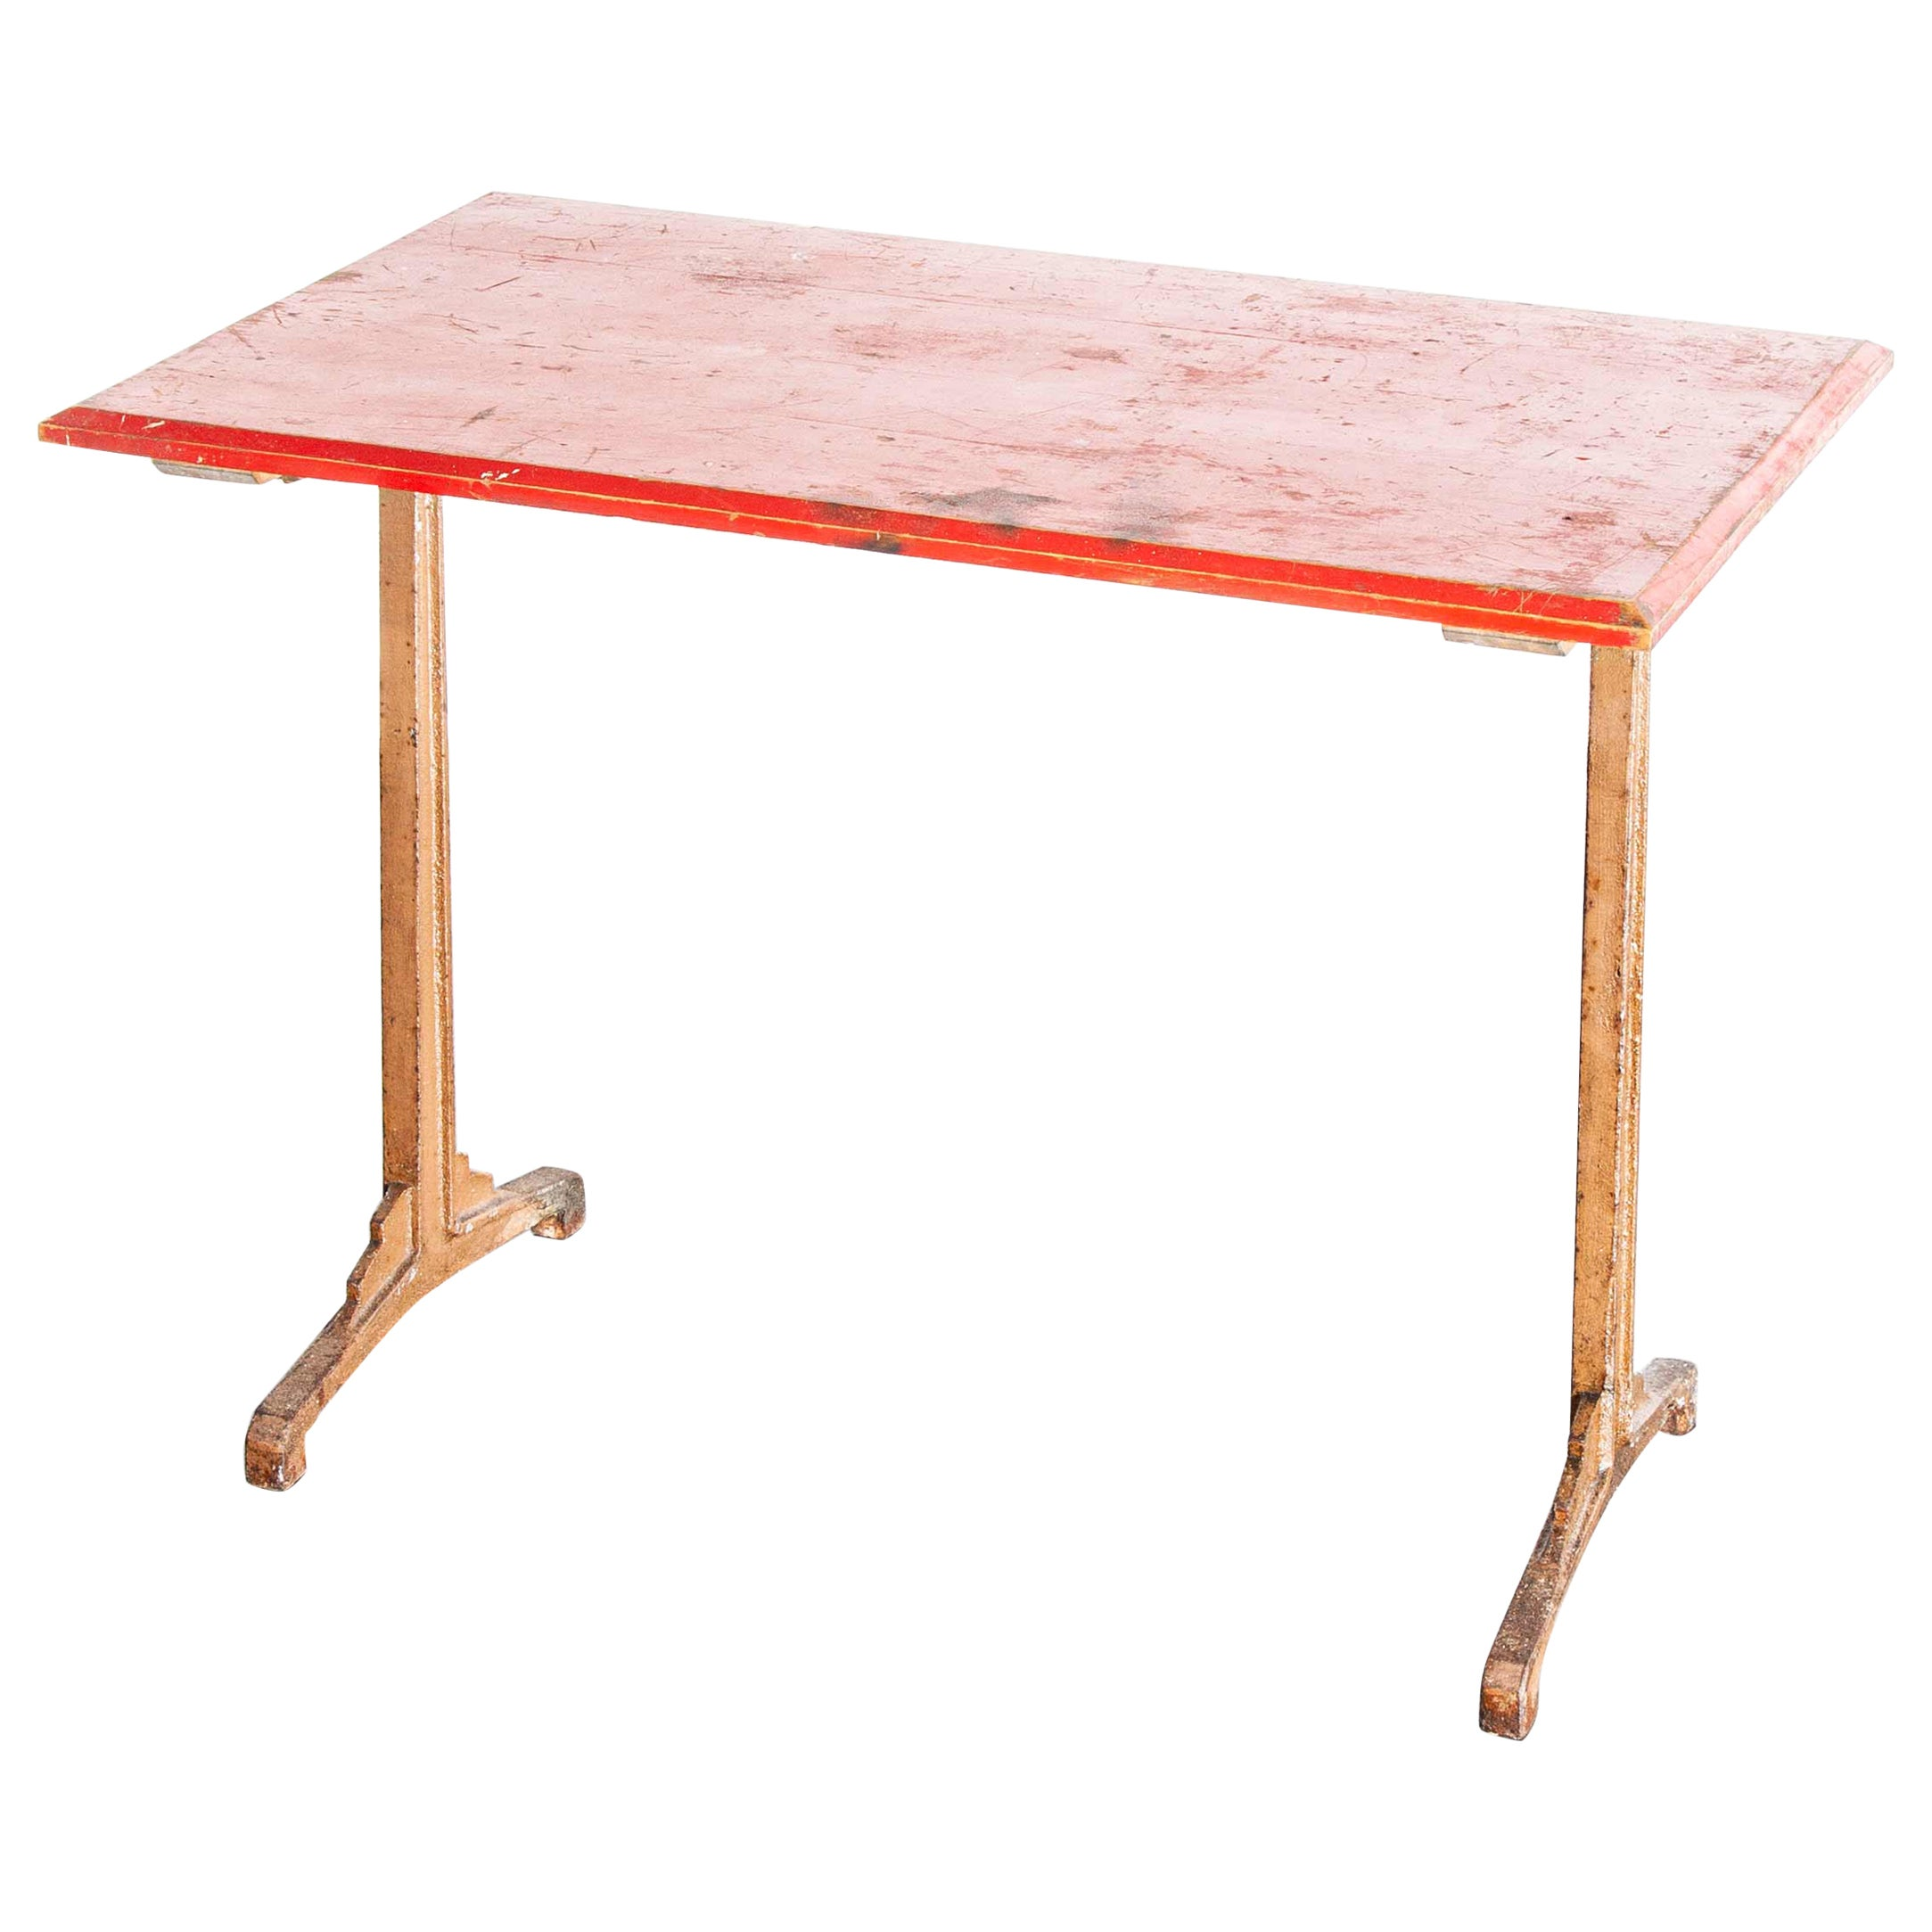 1930s French Bistro Dining Table, Red Top 2